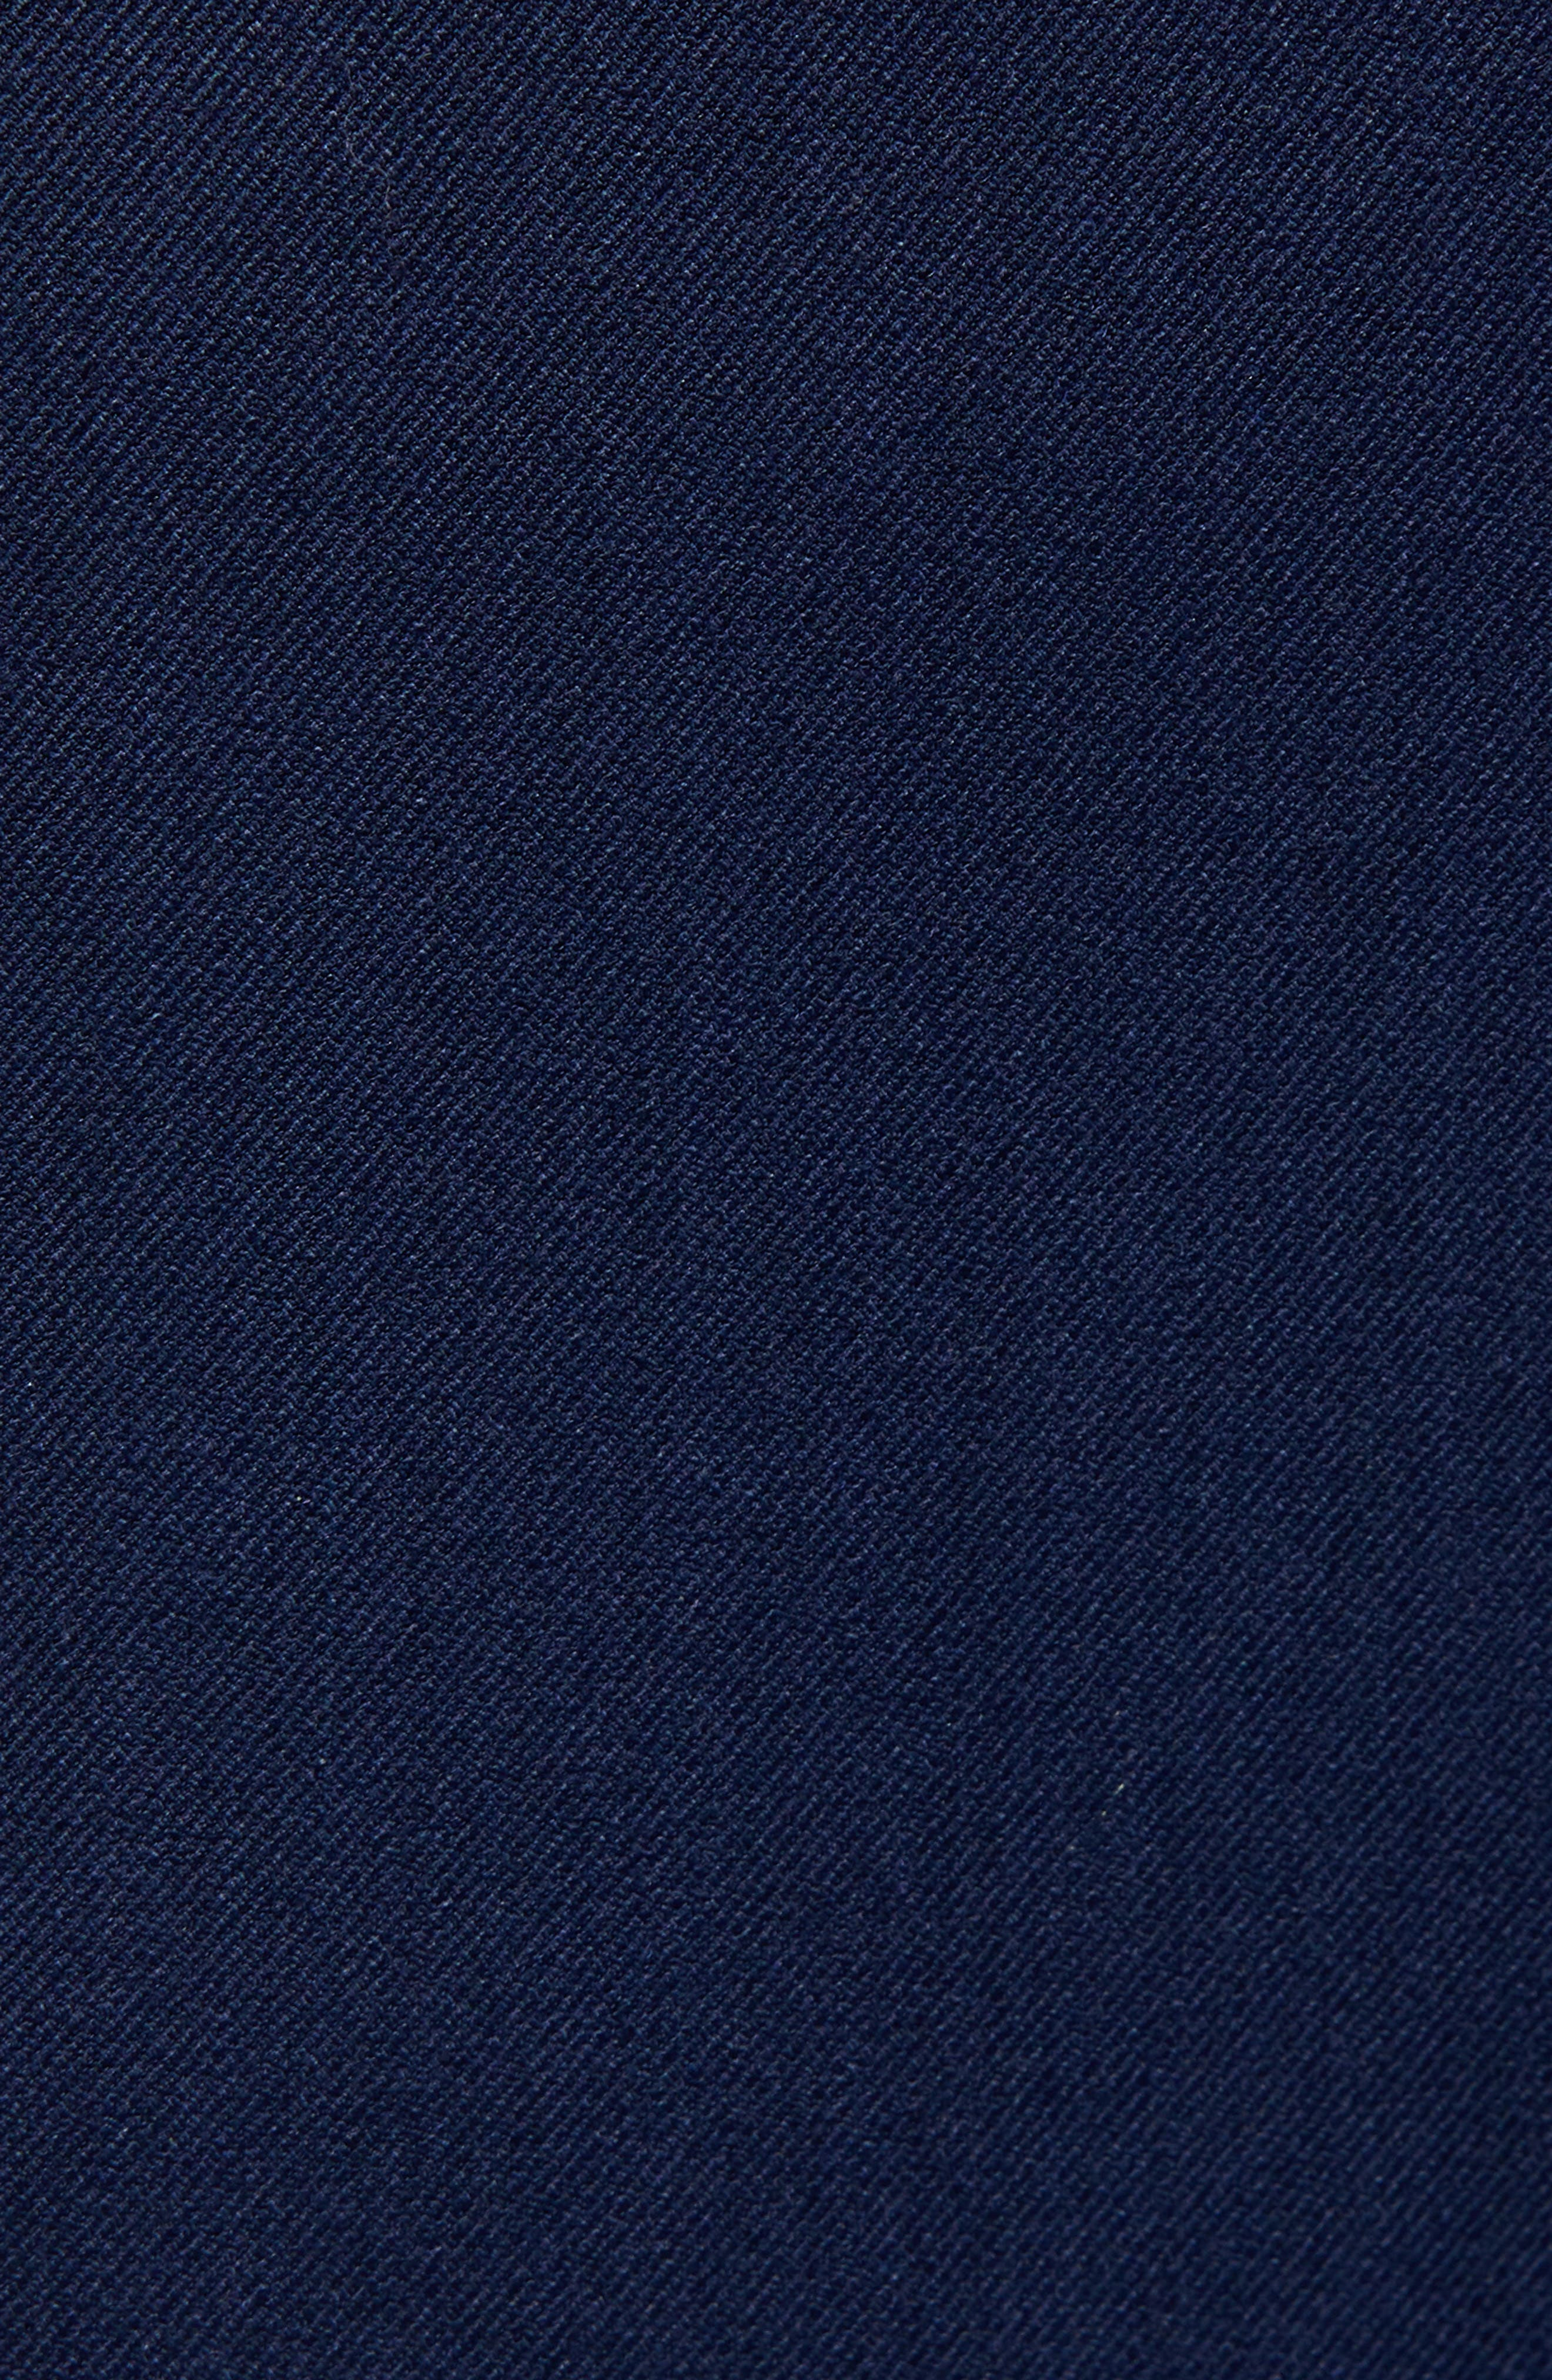 Muscle Fit Trousers,                             Alternate thumbnail 5, color,                             NAVY BLUE